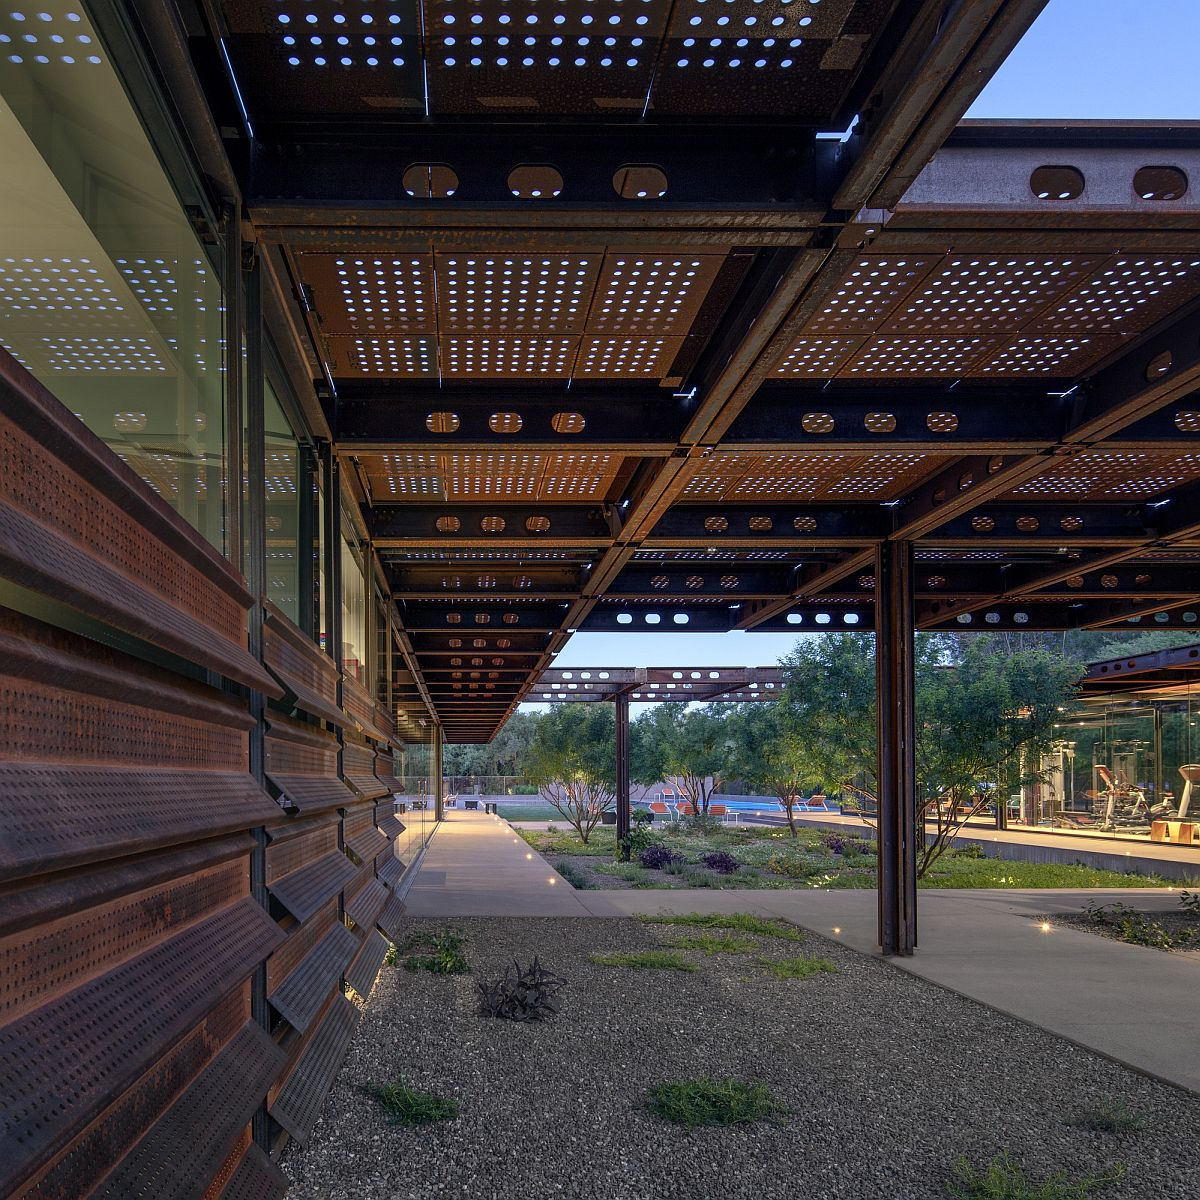 Extended Corten steel roof of the home that adds shade to the outdoor hangouts